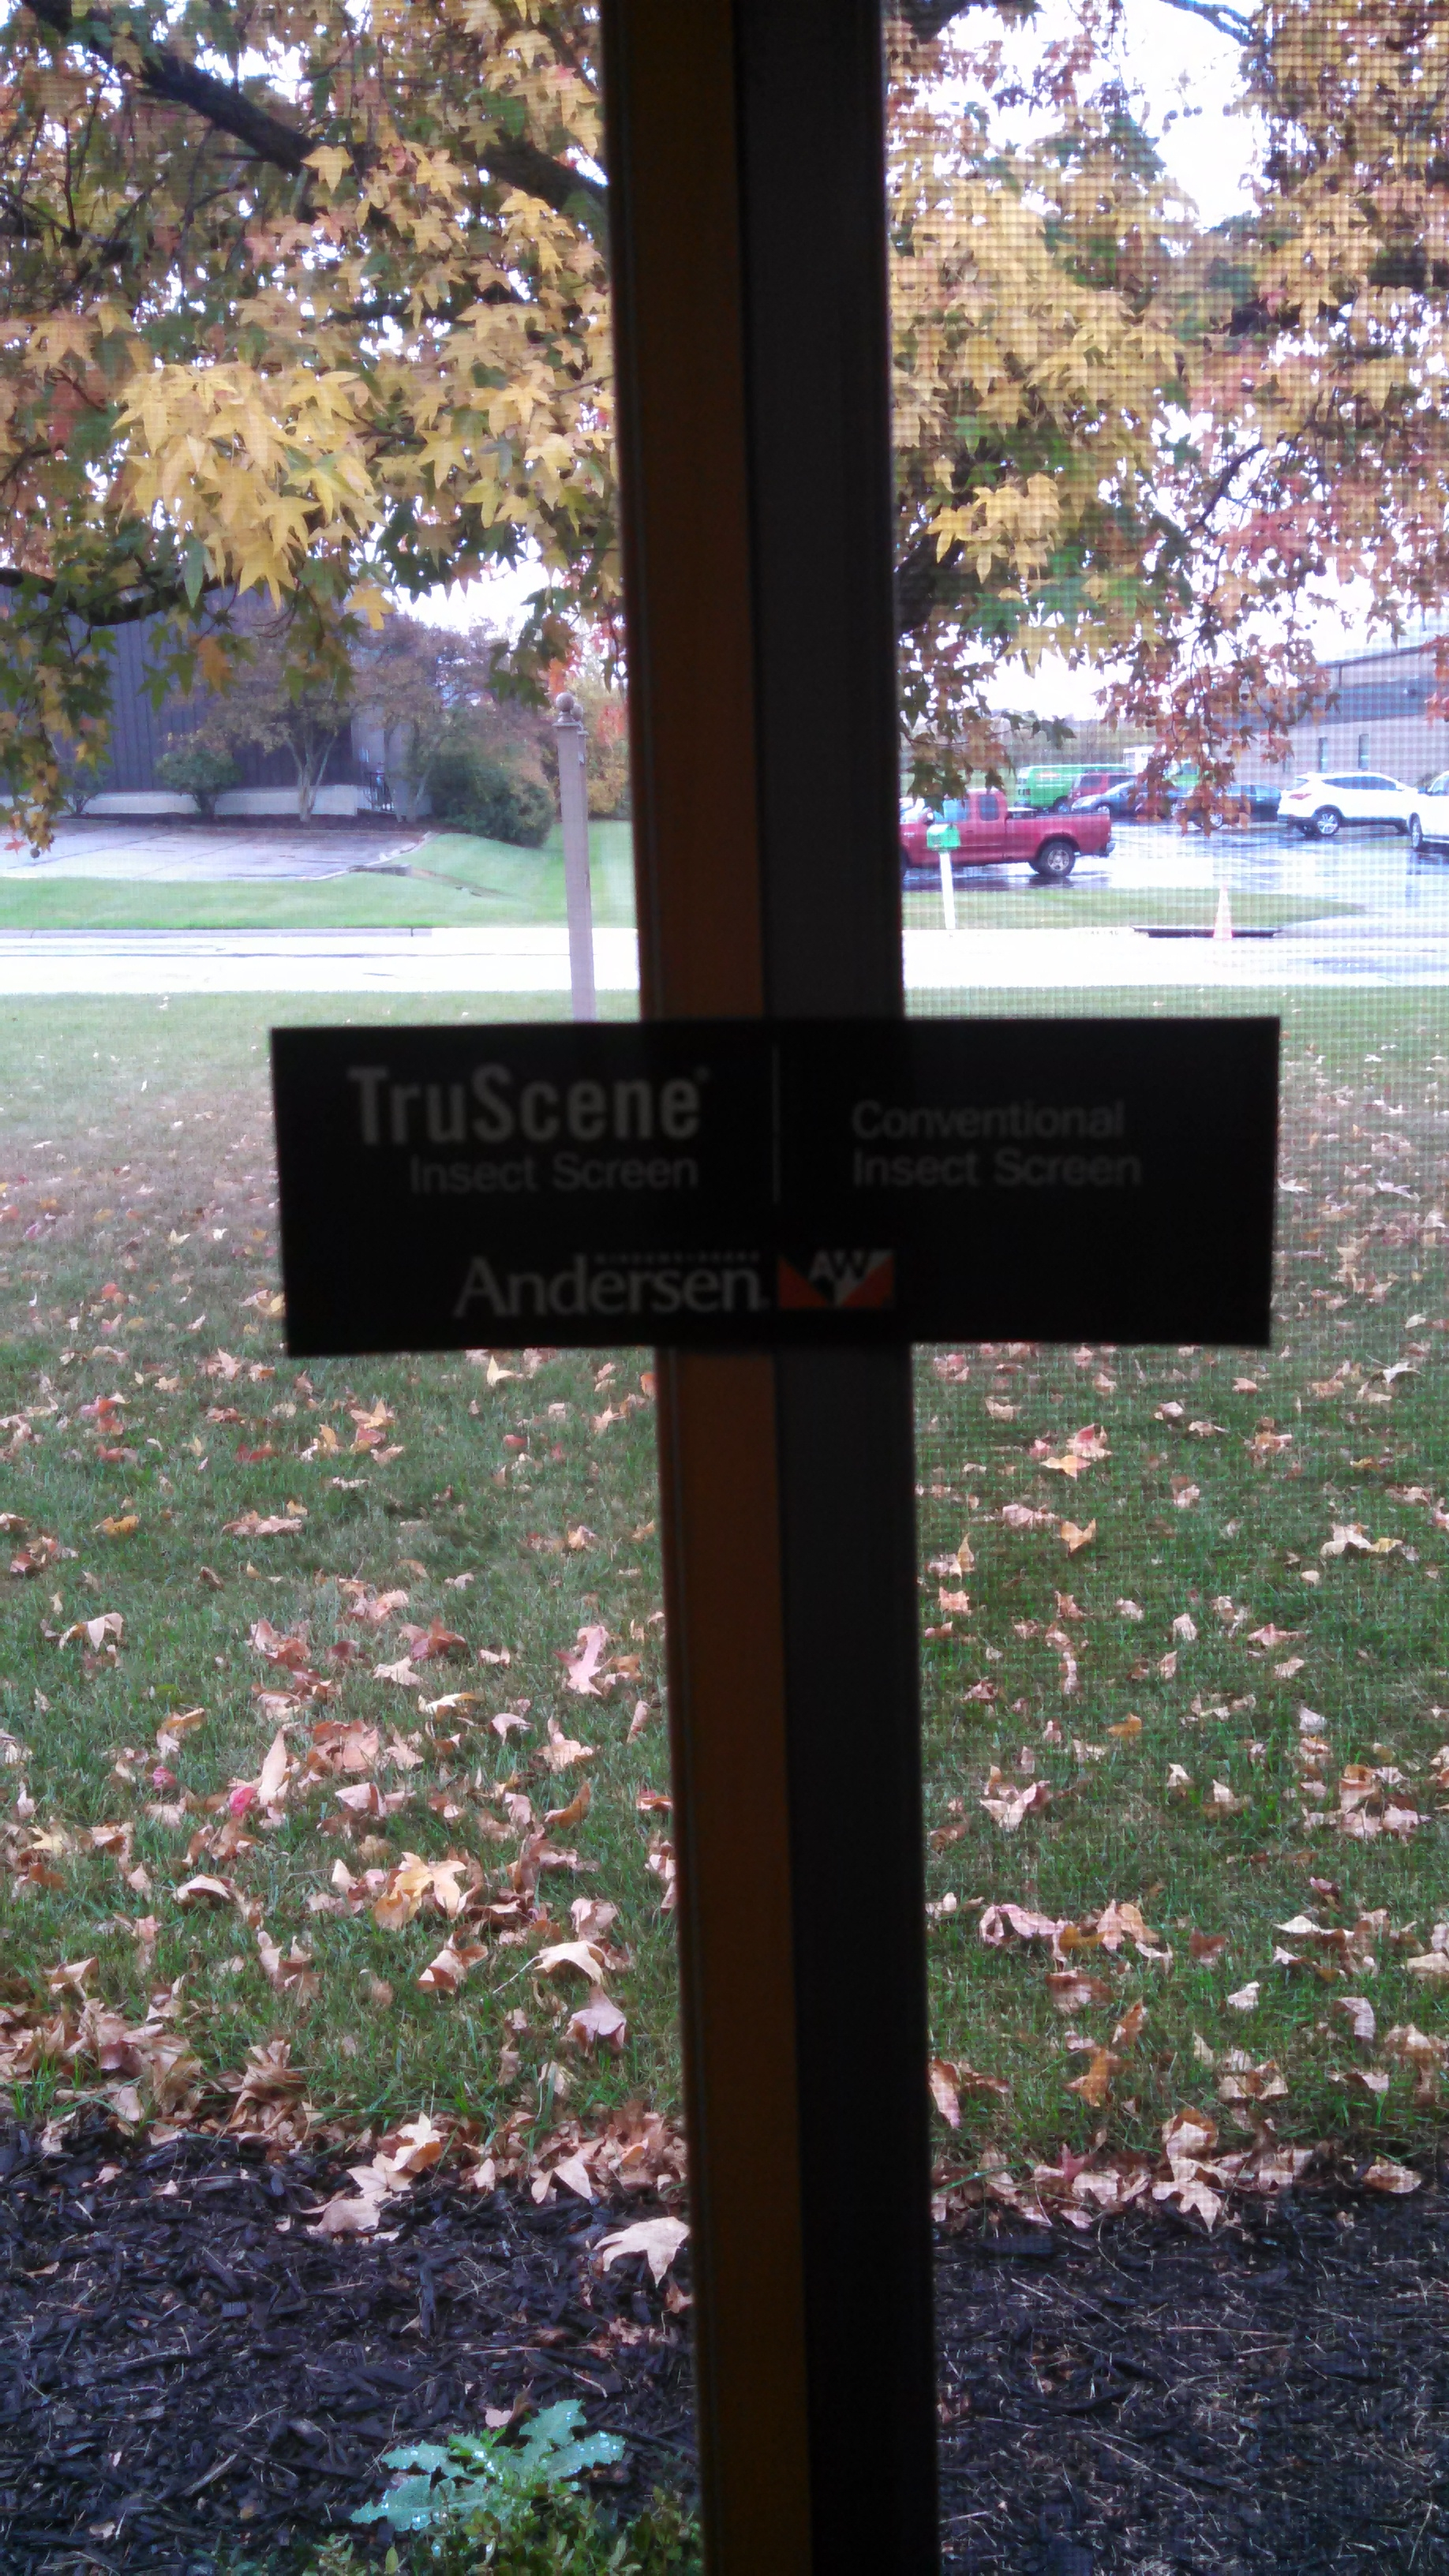 Let Jfk Window And Door Talk To You About The Benefits Of Andersen S Truscene Insect Screens For Your Windows Give Us A Call 513 851 1000 Schedule